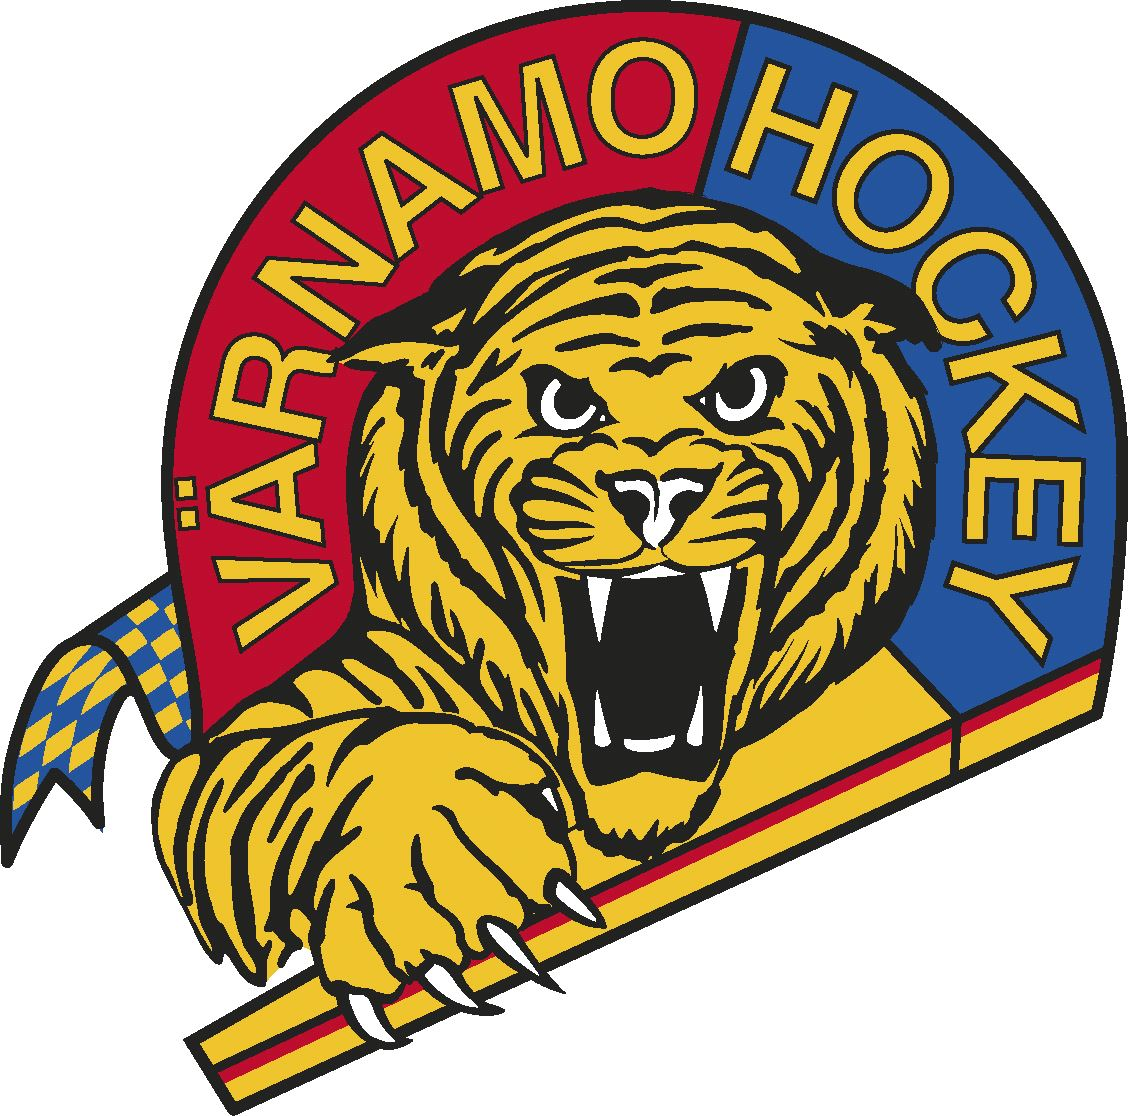 Värnamo Hockey - Lund Giants HC